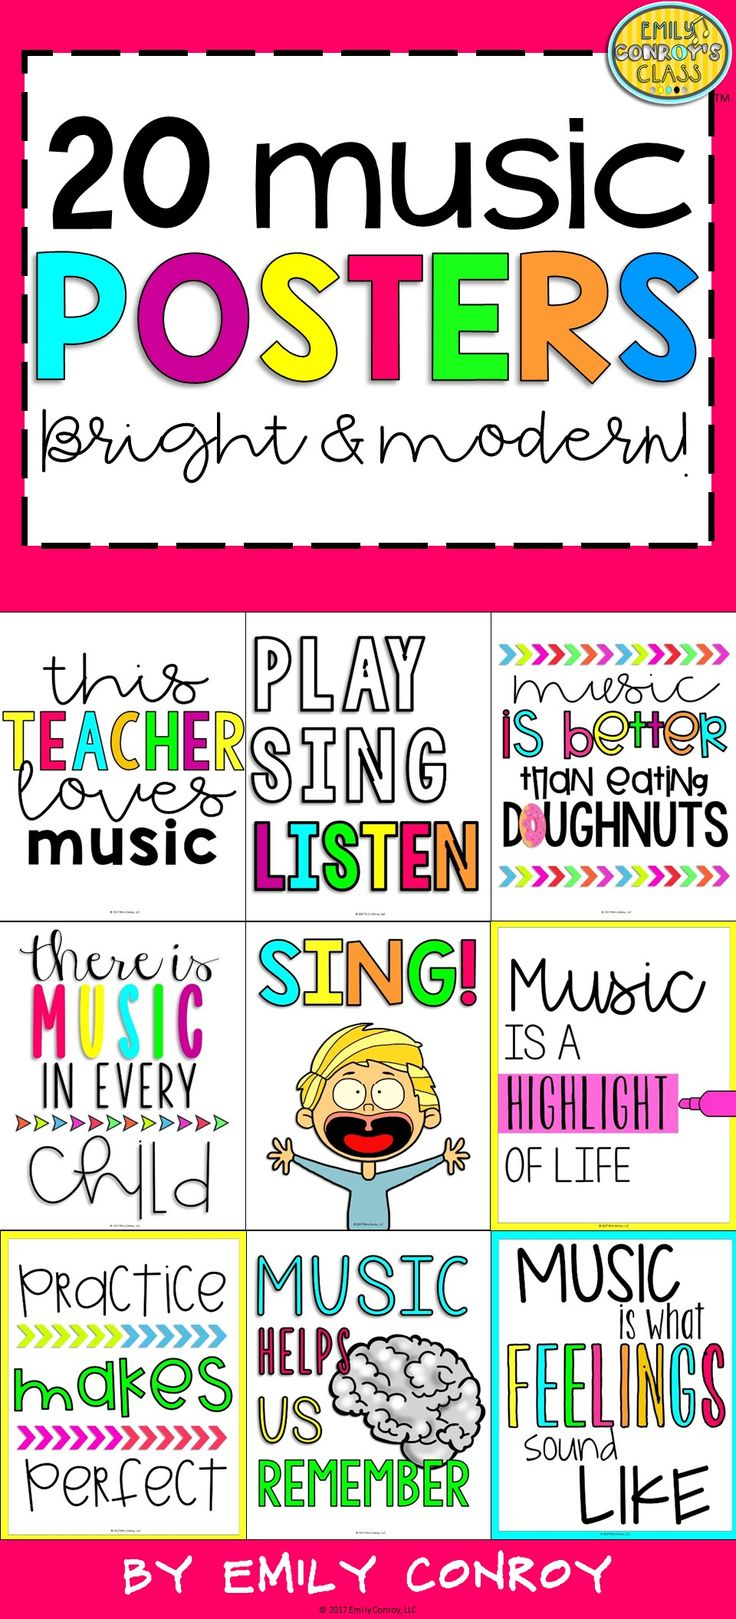 This product contains 20 bright and modern music posters. These posters are perfect for hanging at home or for an addition to your music classroom decor!